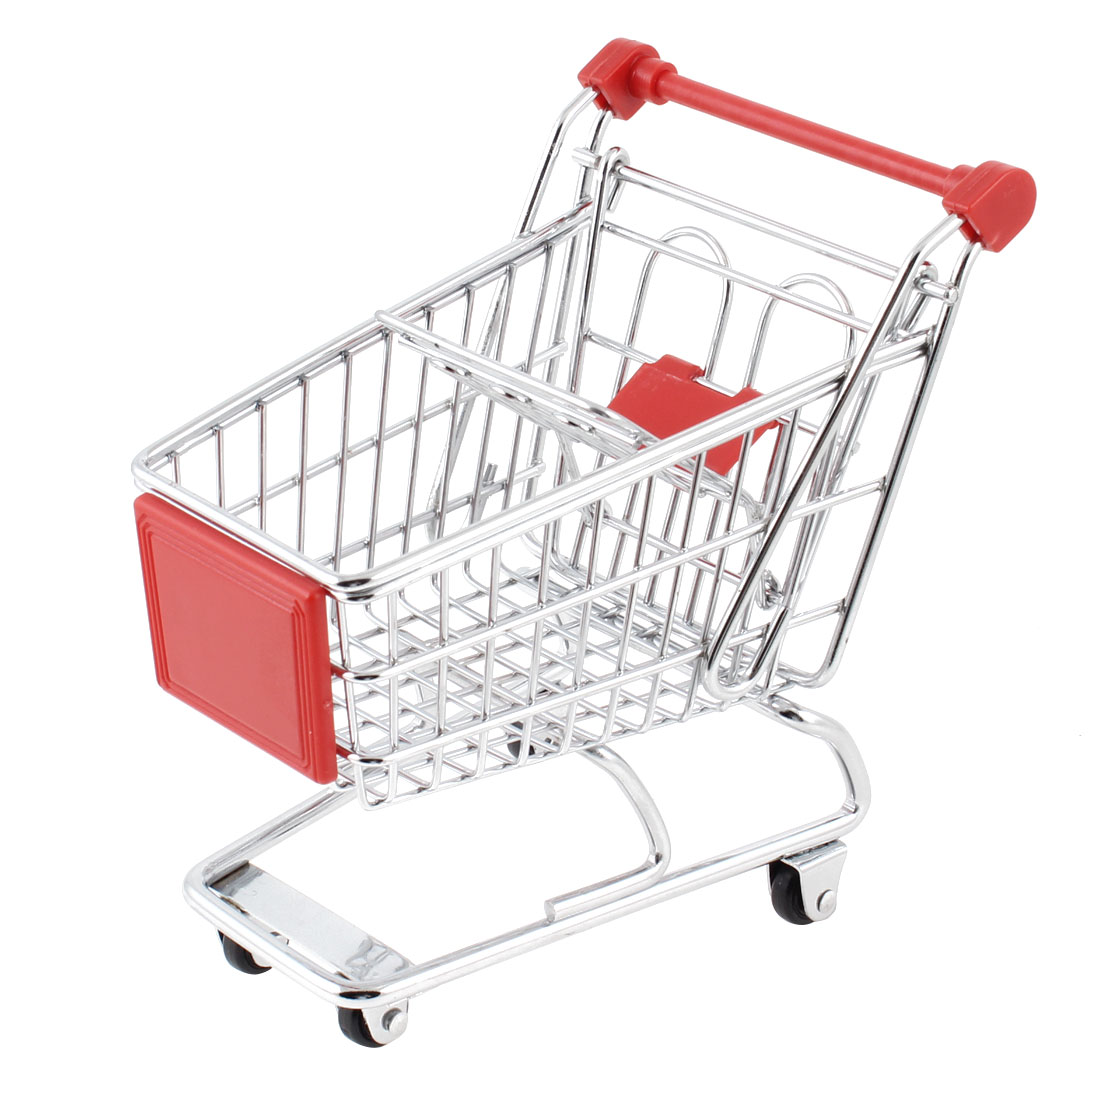 Stainless Steel Mini-Shopping Cart Model Toy Container Red Silver Tone